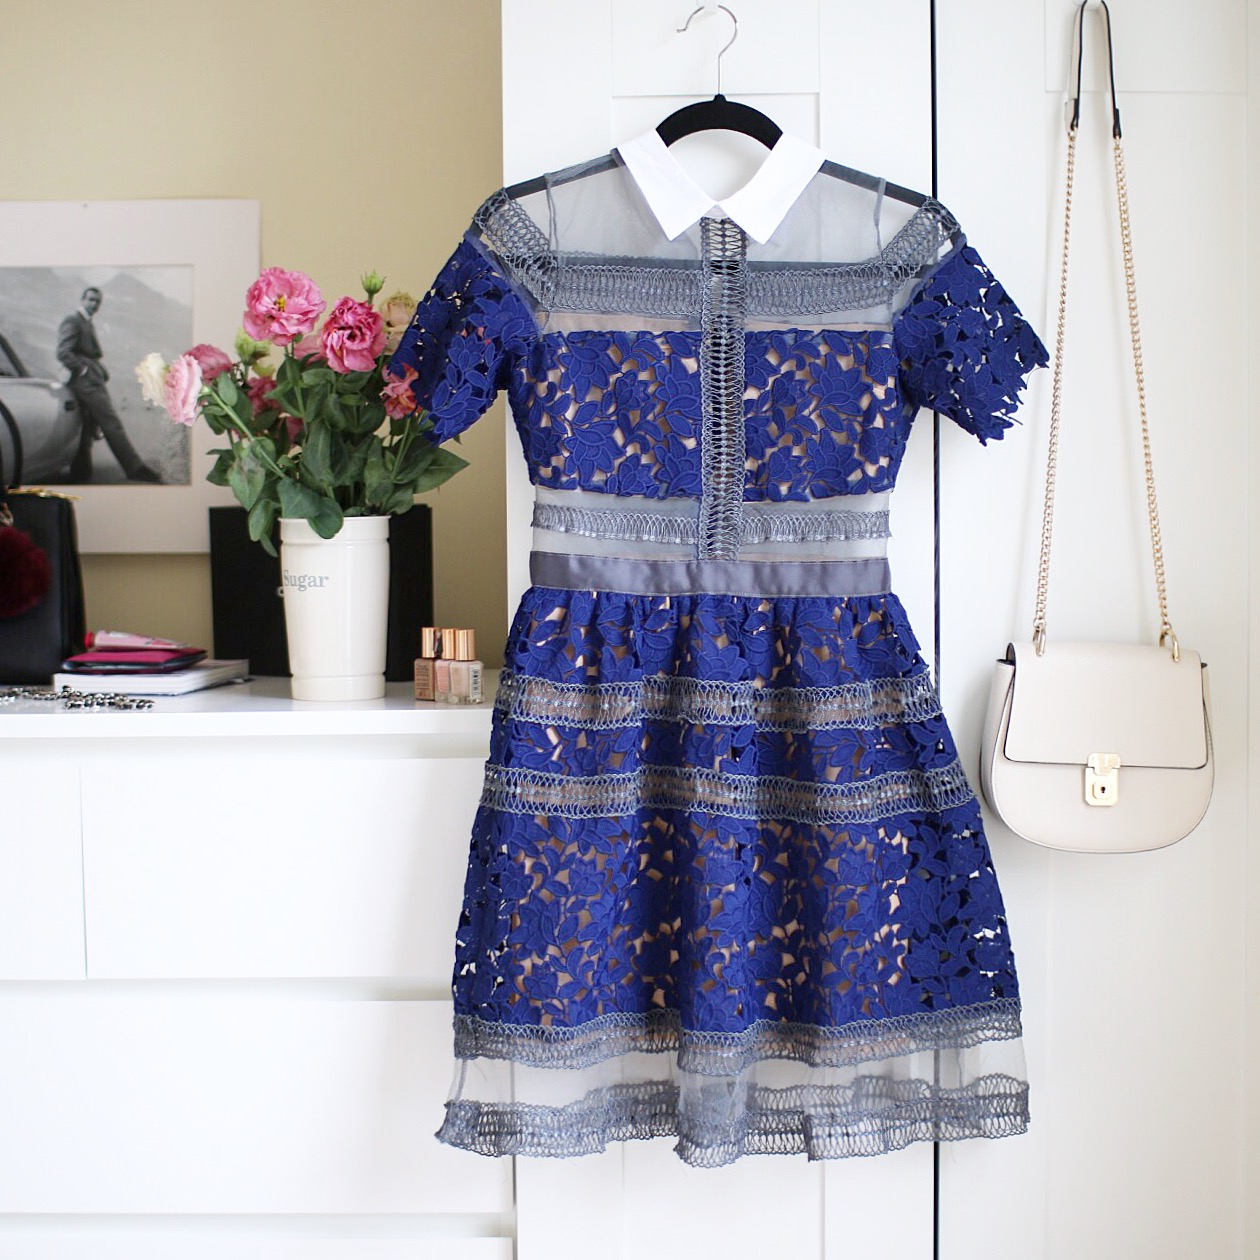 a feminine blue lace dress with sheer panels hangs in front of a closet door with an chloe drew bag